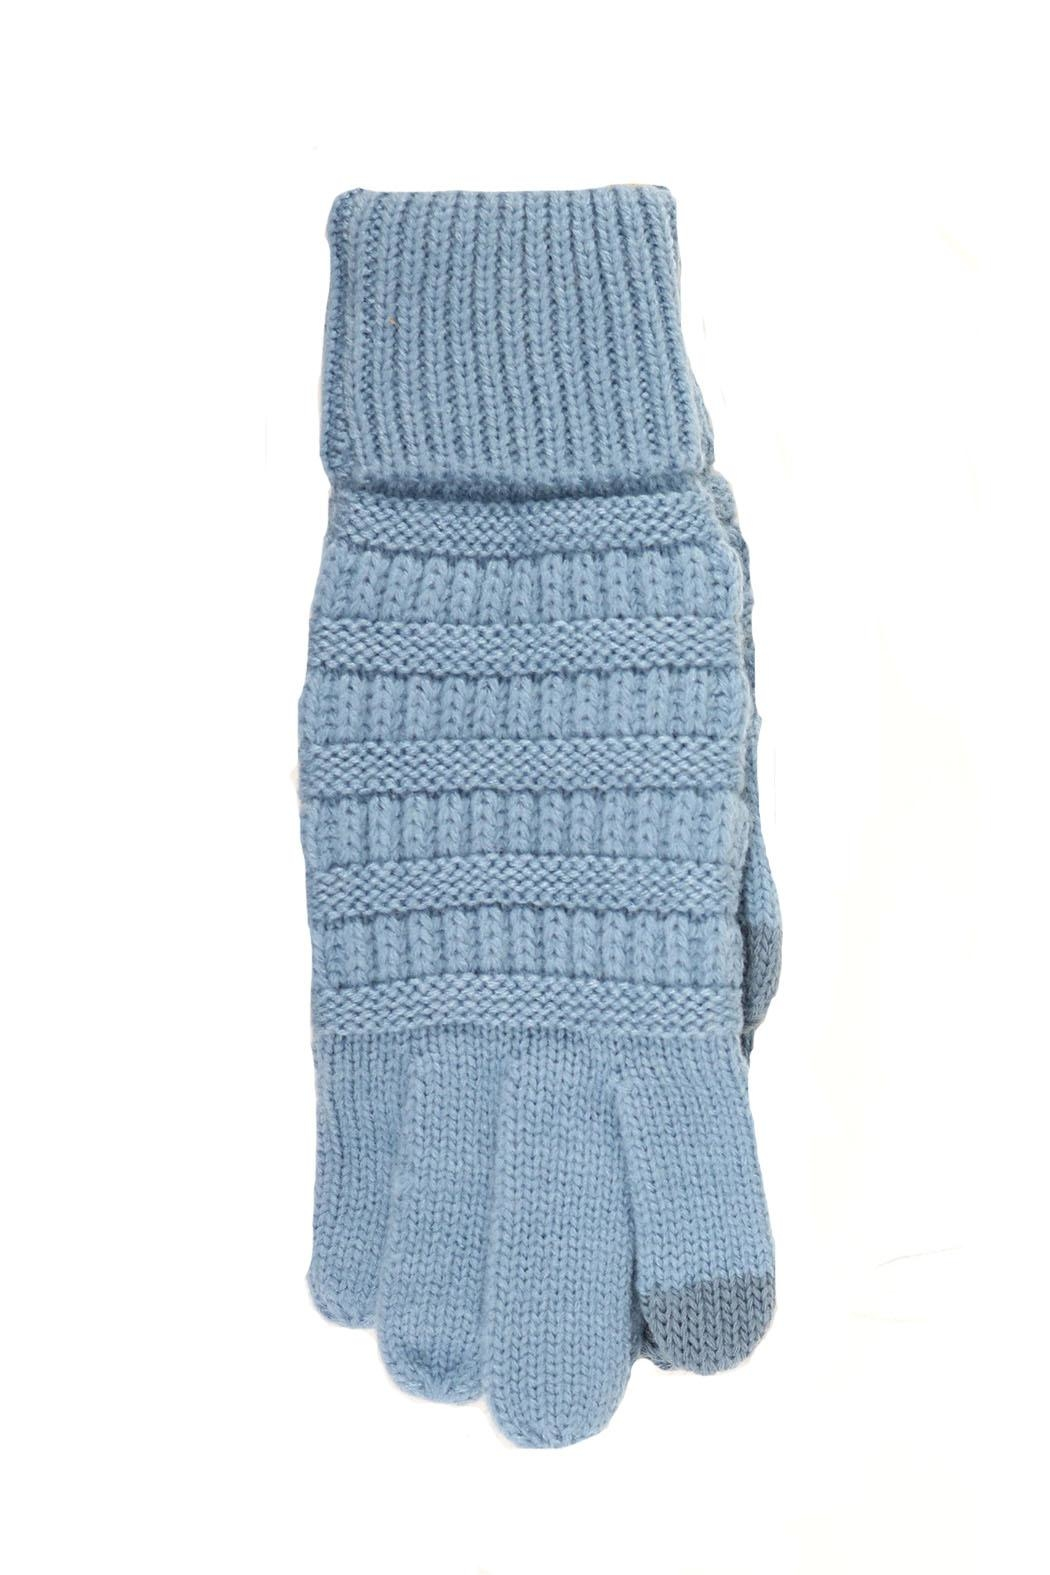 C.C Beanie Light-Blue Knit Gloves - Main Image